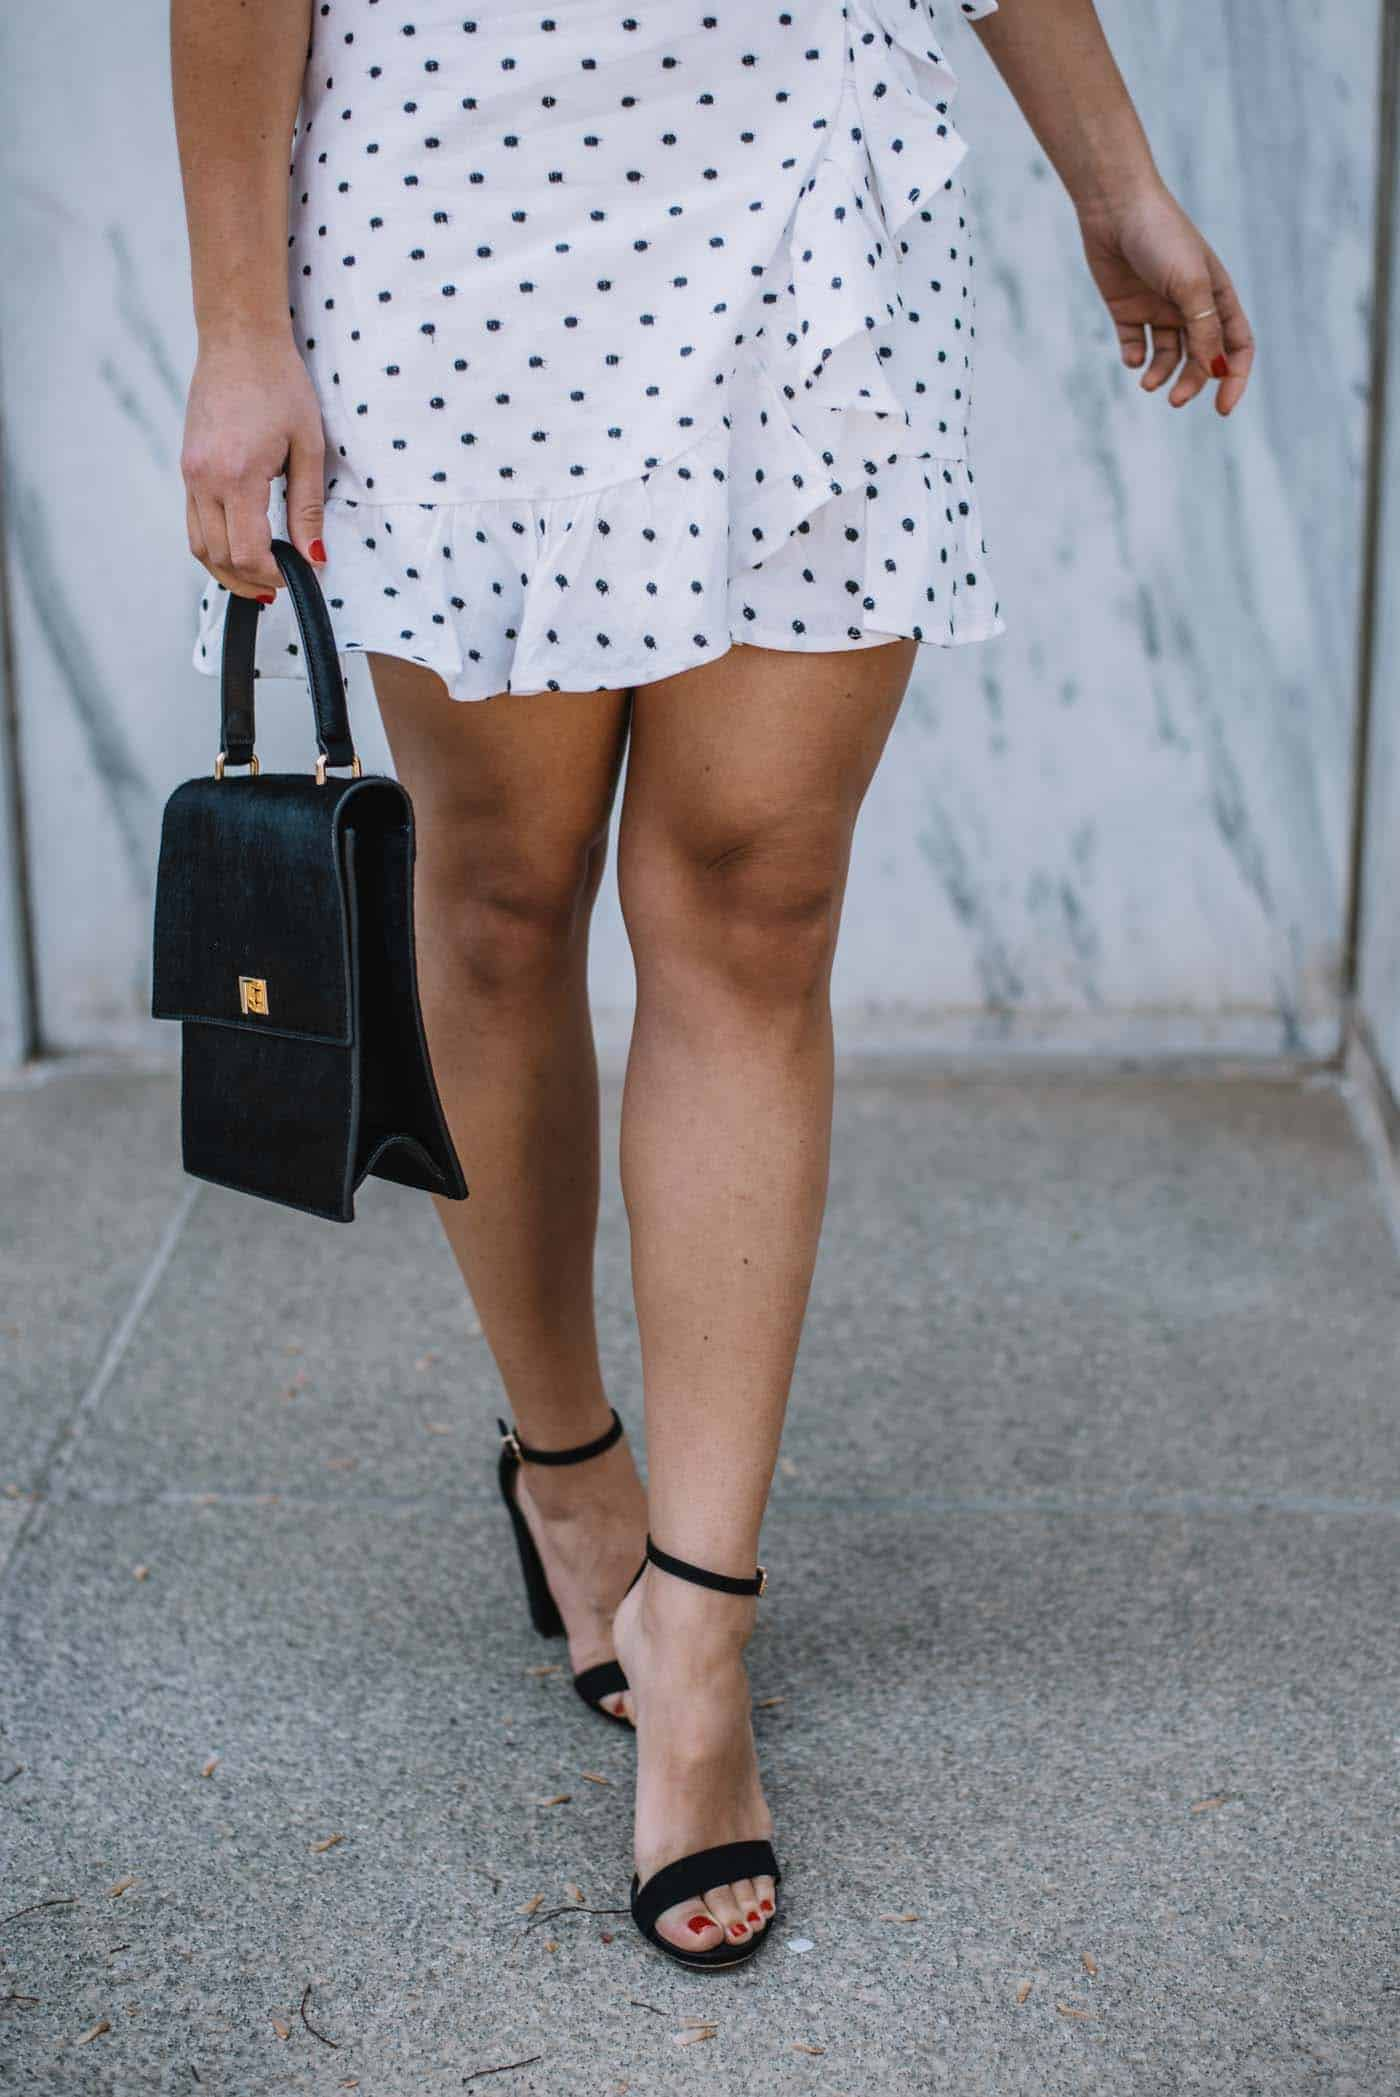 best black high heels, black and white polka dot dress - My Style Vita